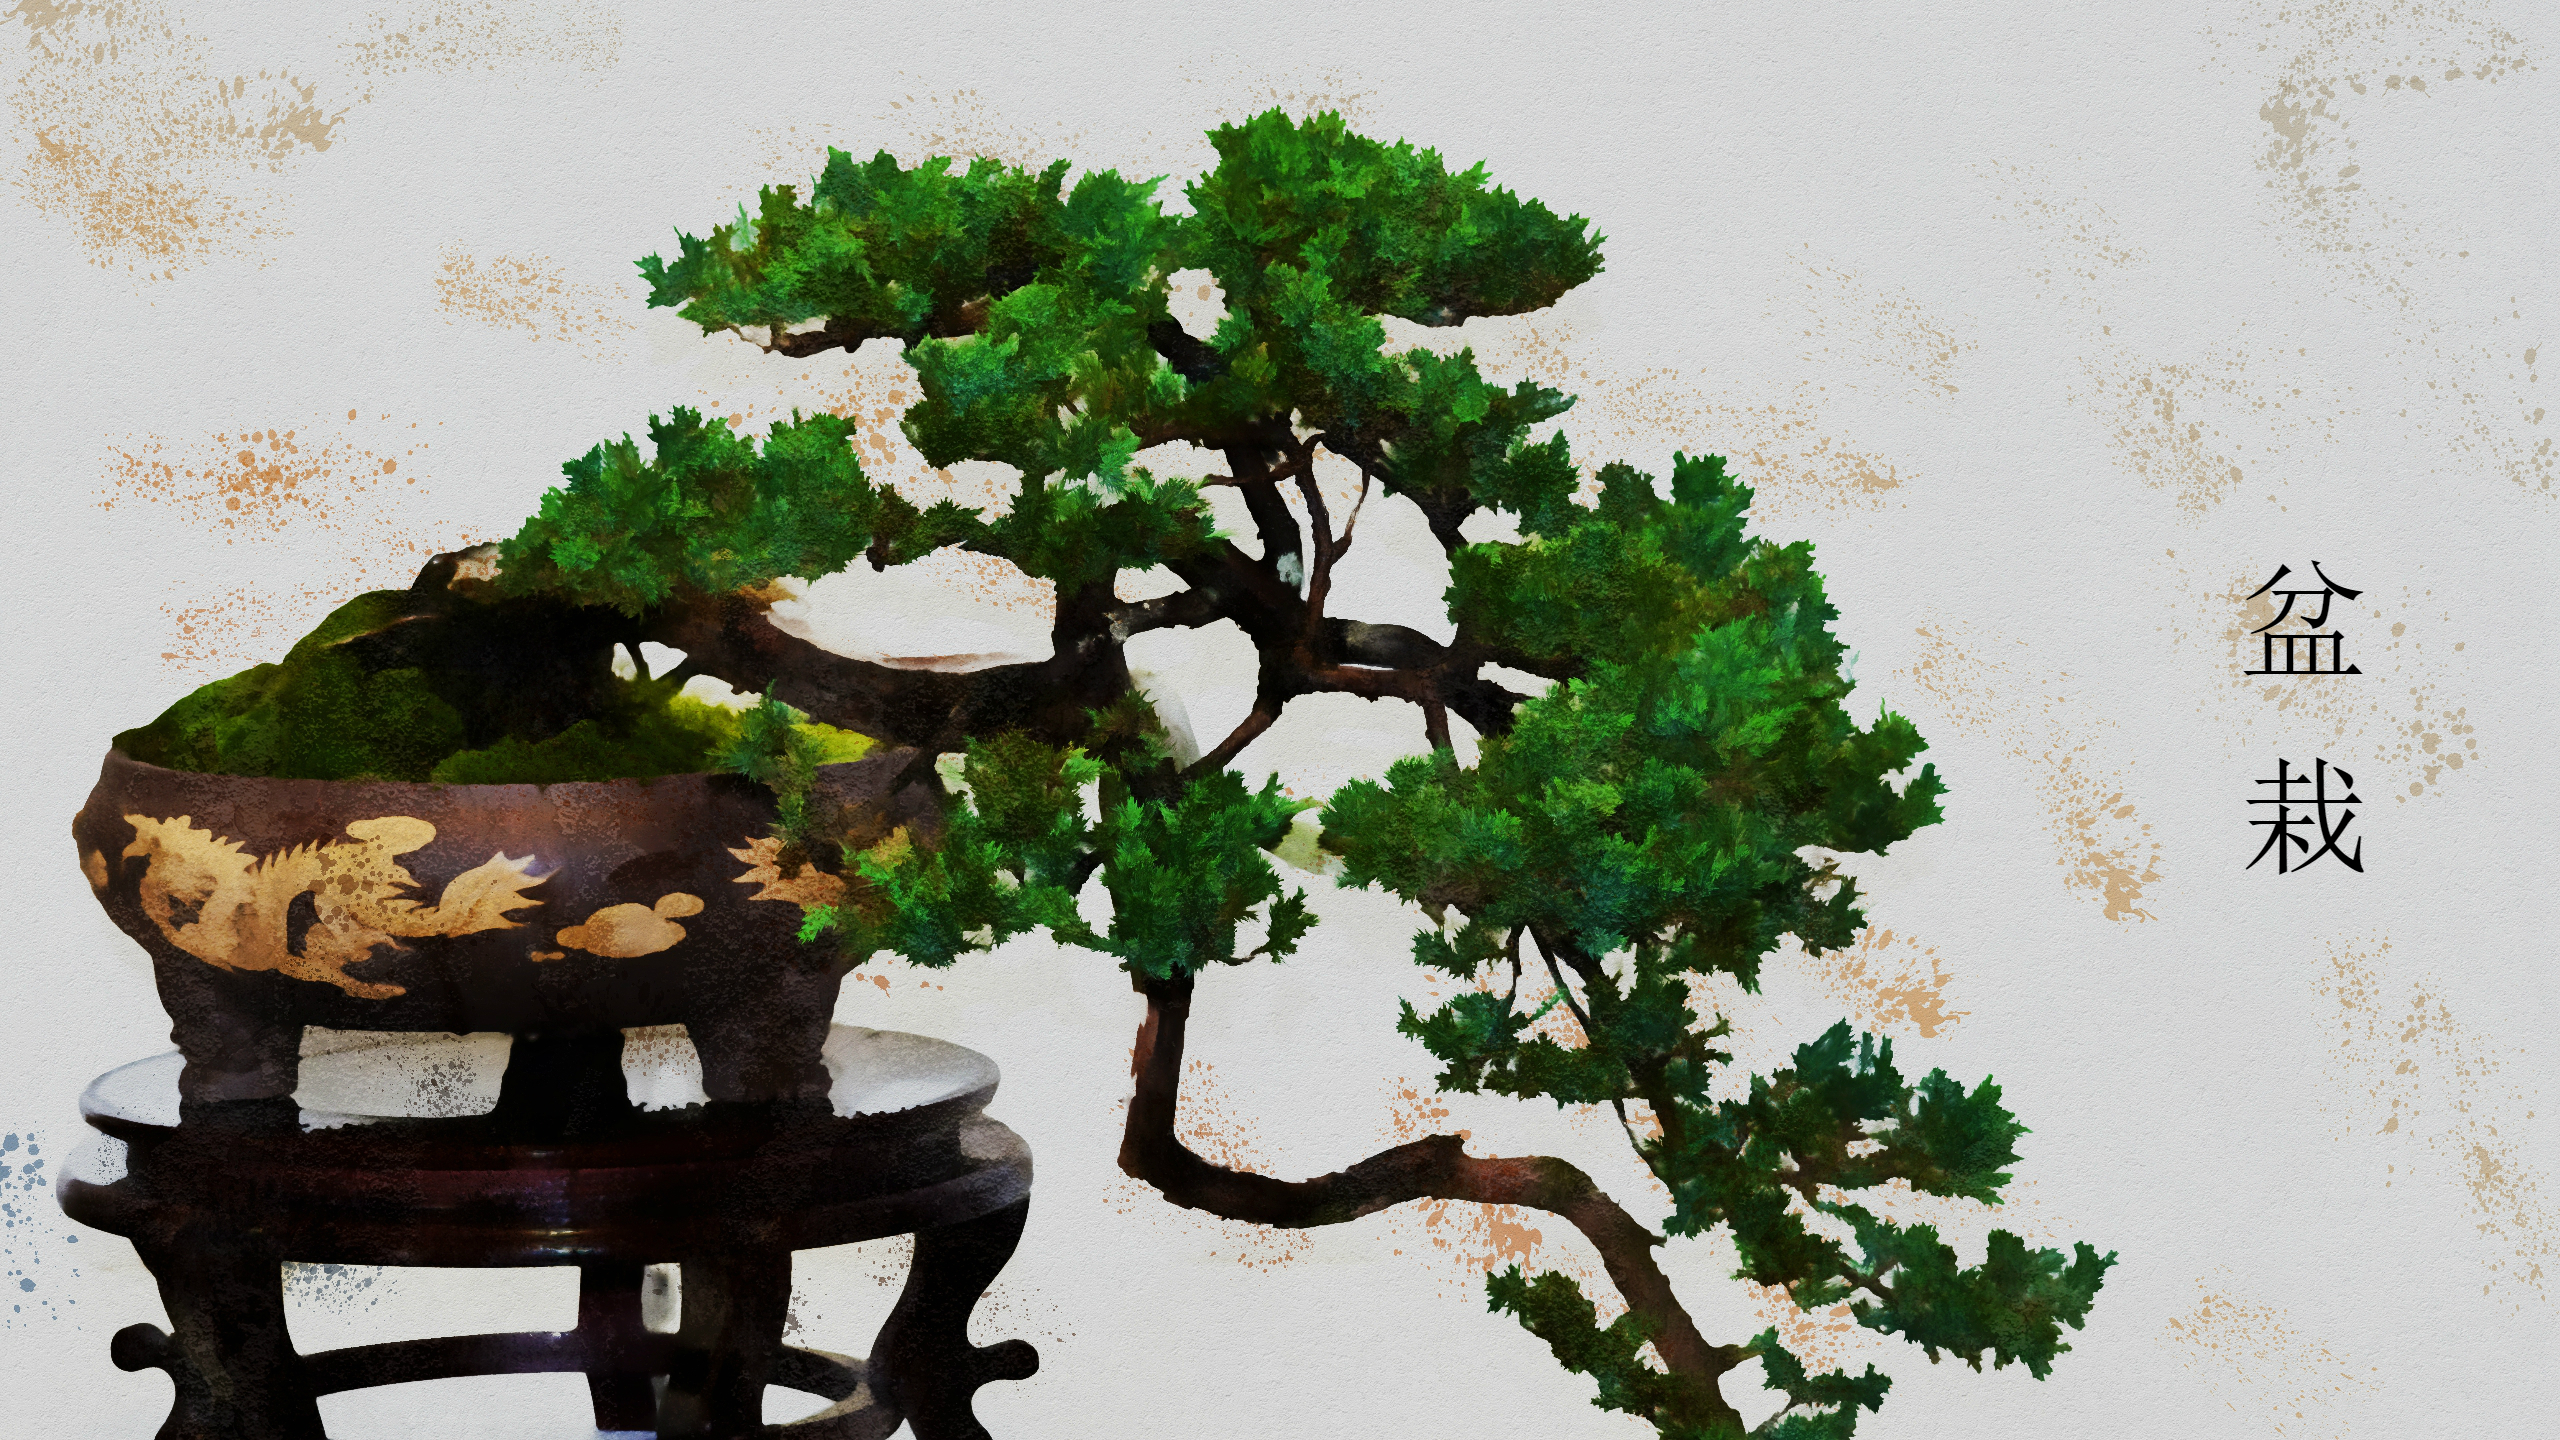 Artistic Bonsai Kanji Plant Pot Plant Tree 2560x1440